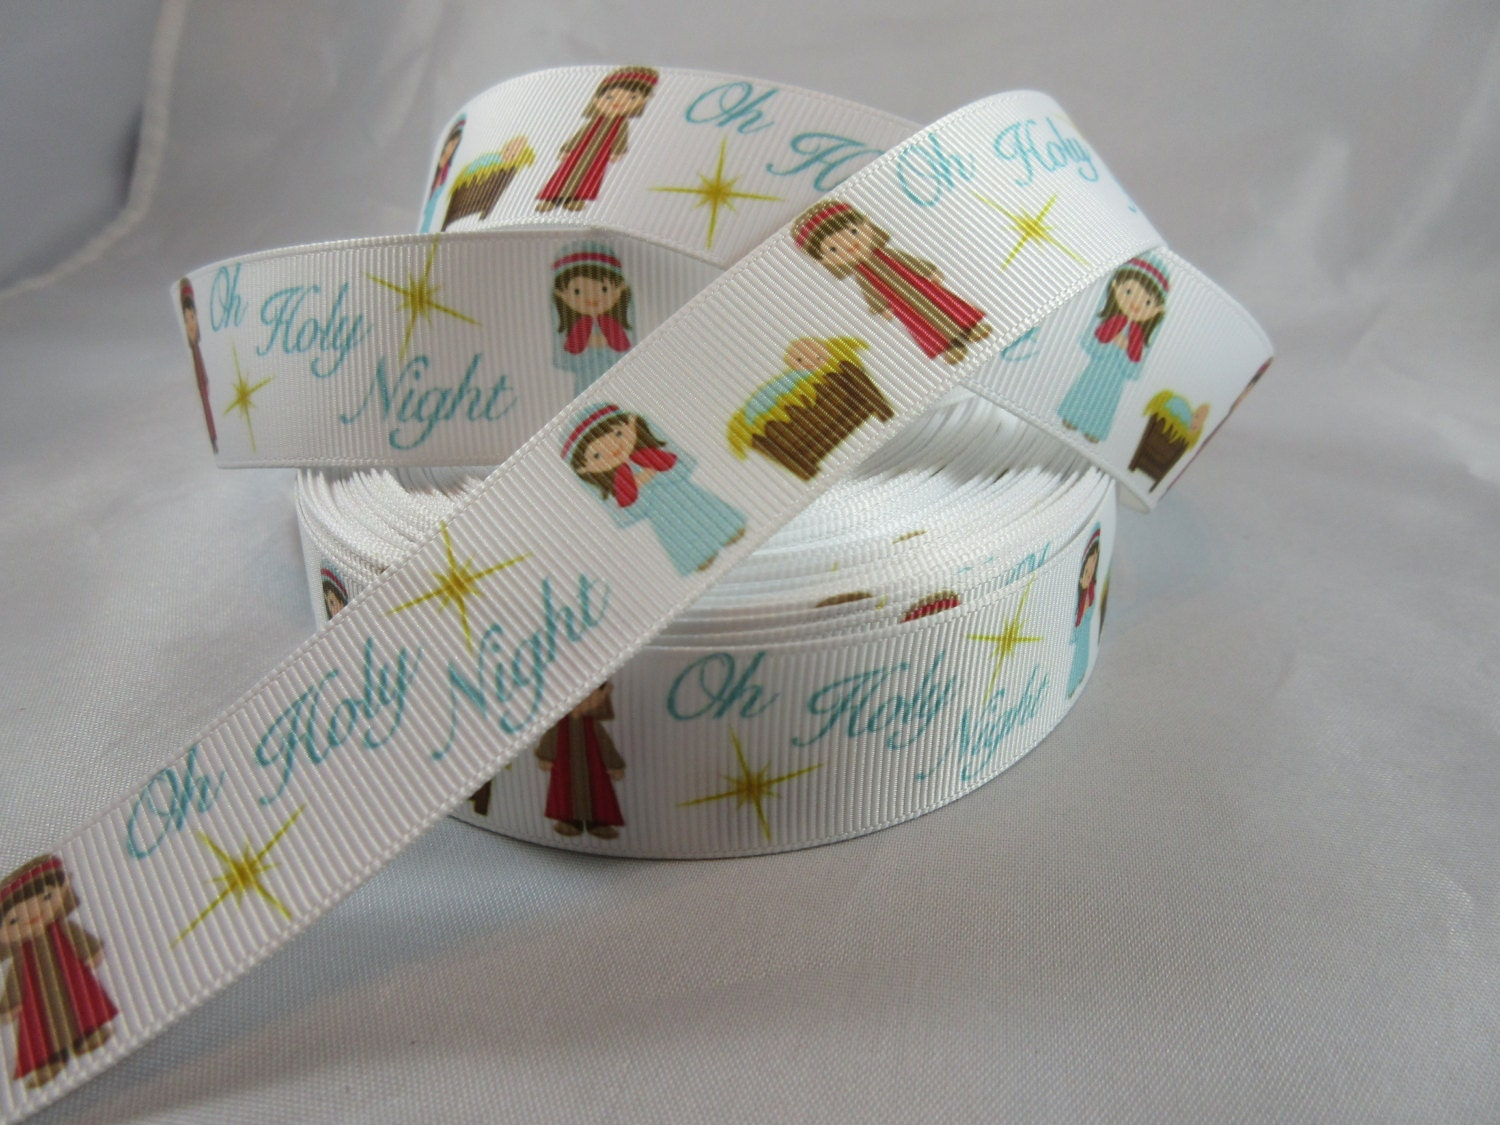 Oh holy night ribbon merry christmas jesus nativity for Craft supplies online cheap